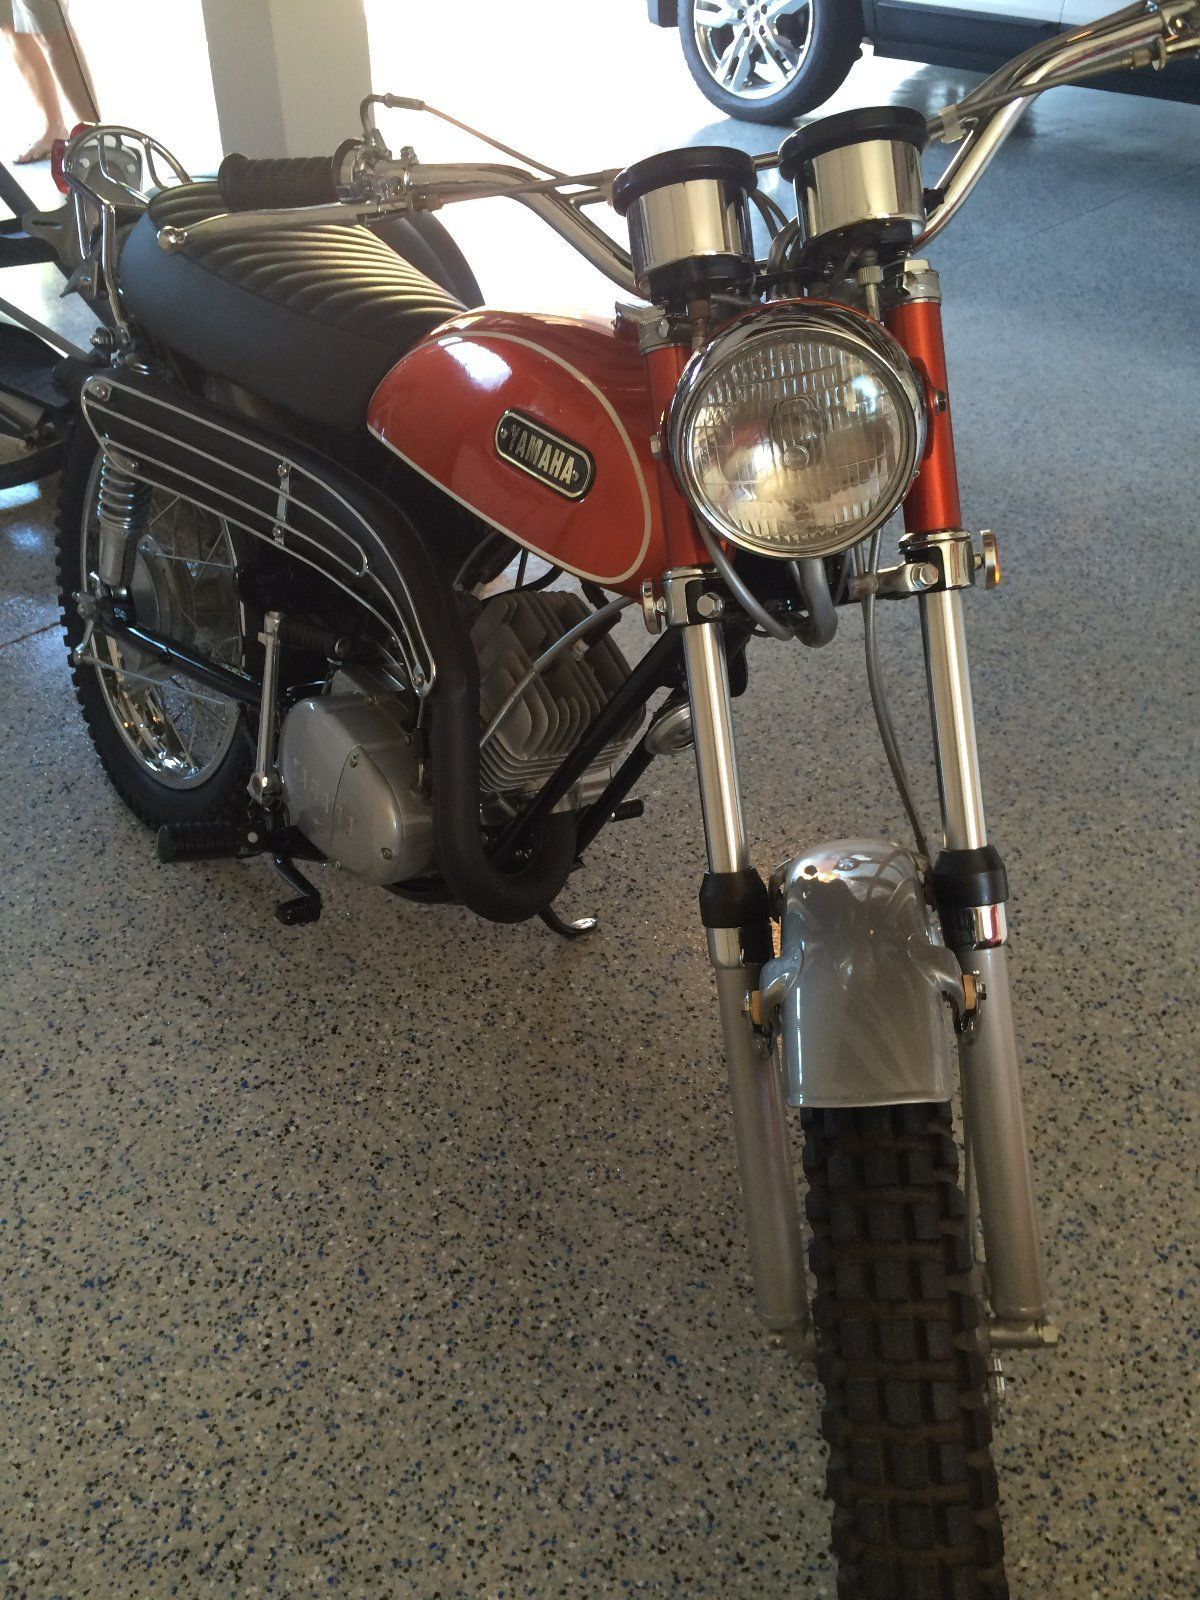 1969 Yamaha Ct 1 175 Enduro Fully Restored | eBay | 1969